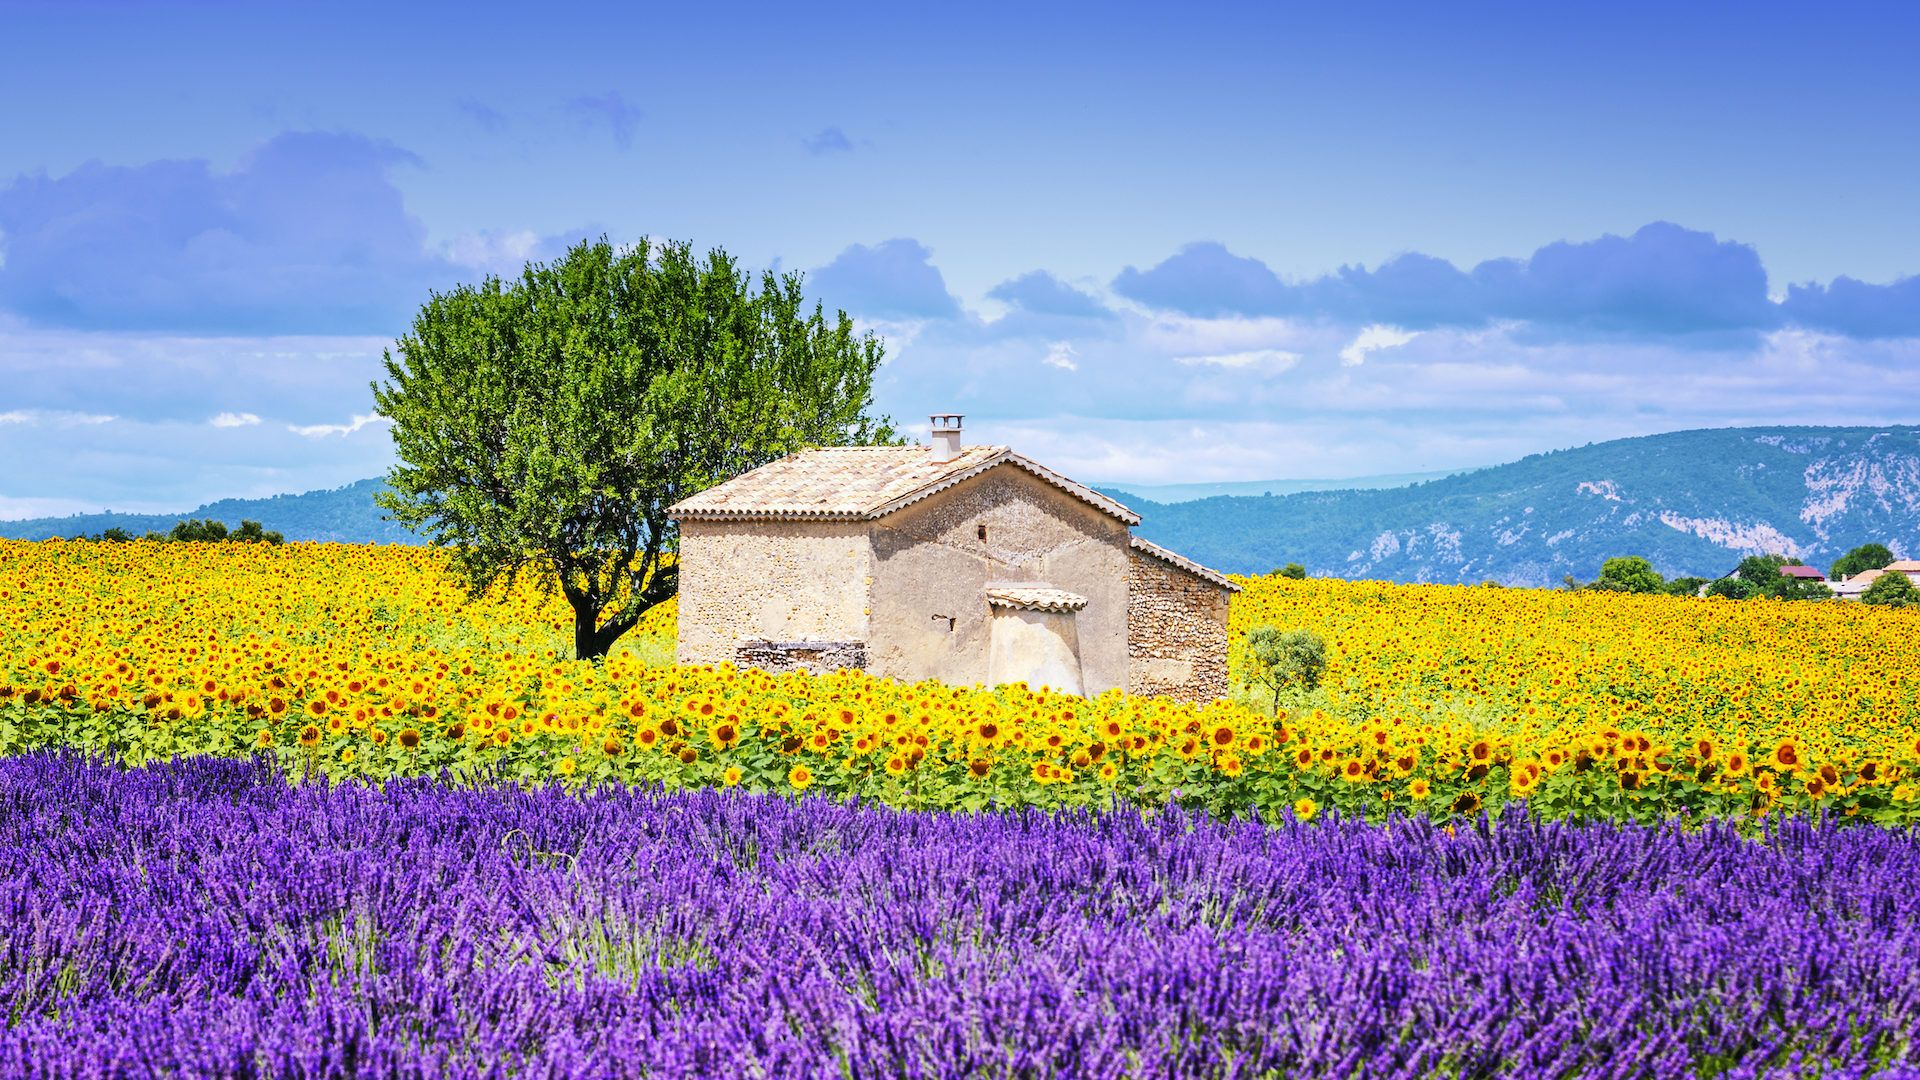 Provence France Wallpapers   Top Provence France Backgrounds 1920x1080